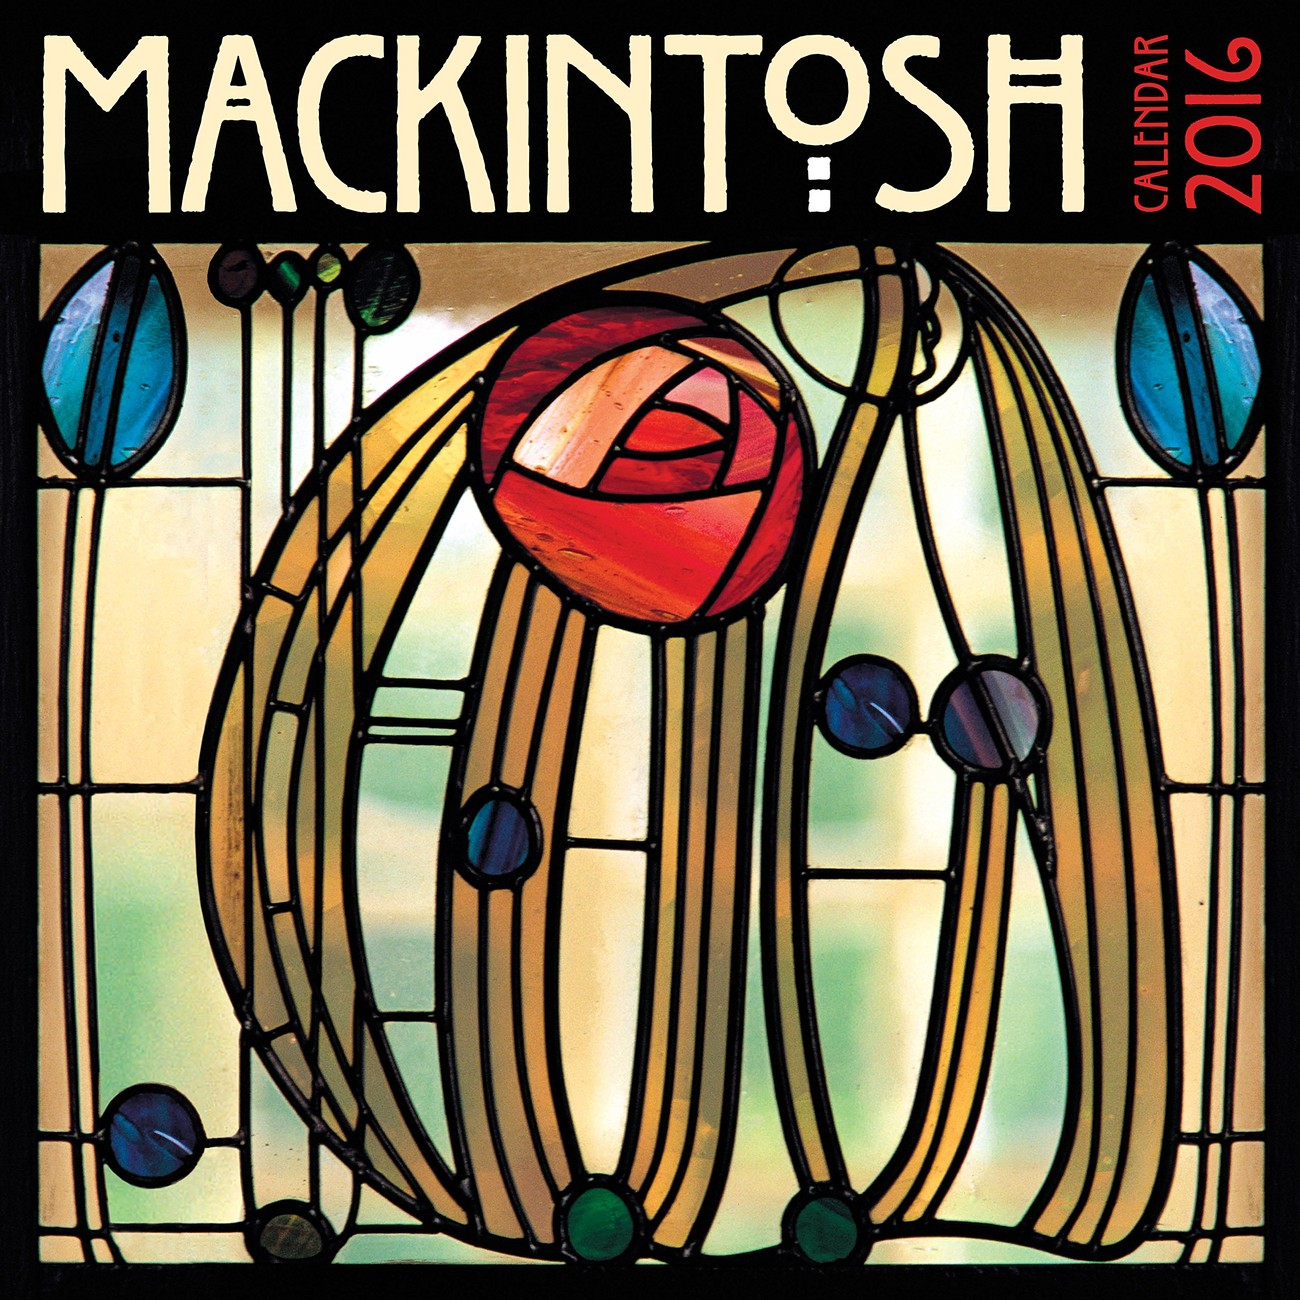 charles rennie mackintosh calendars 2018 on. Black Bedroom Furniture Sets. Home Design Ideas